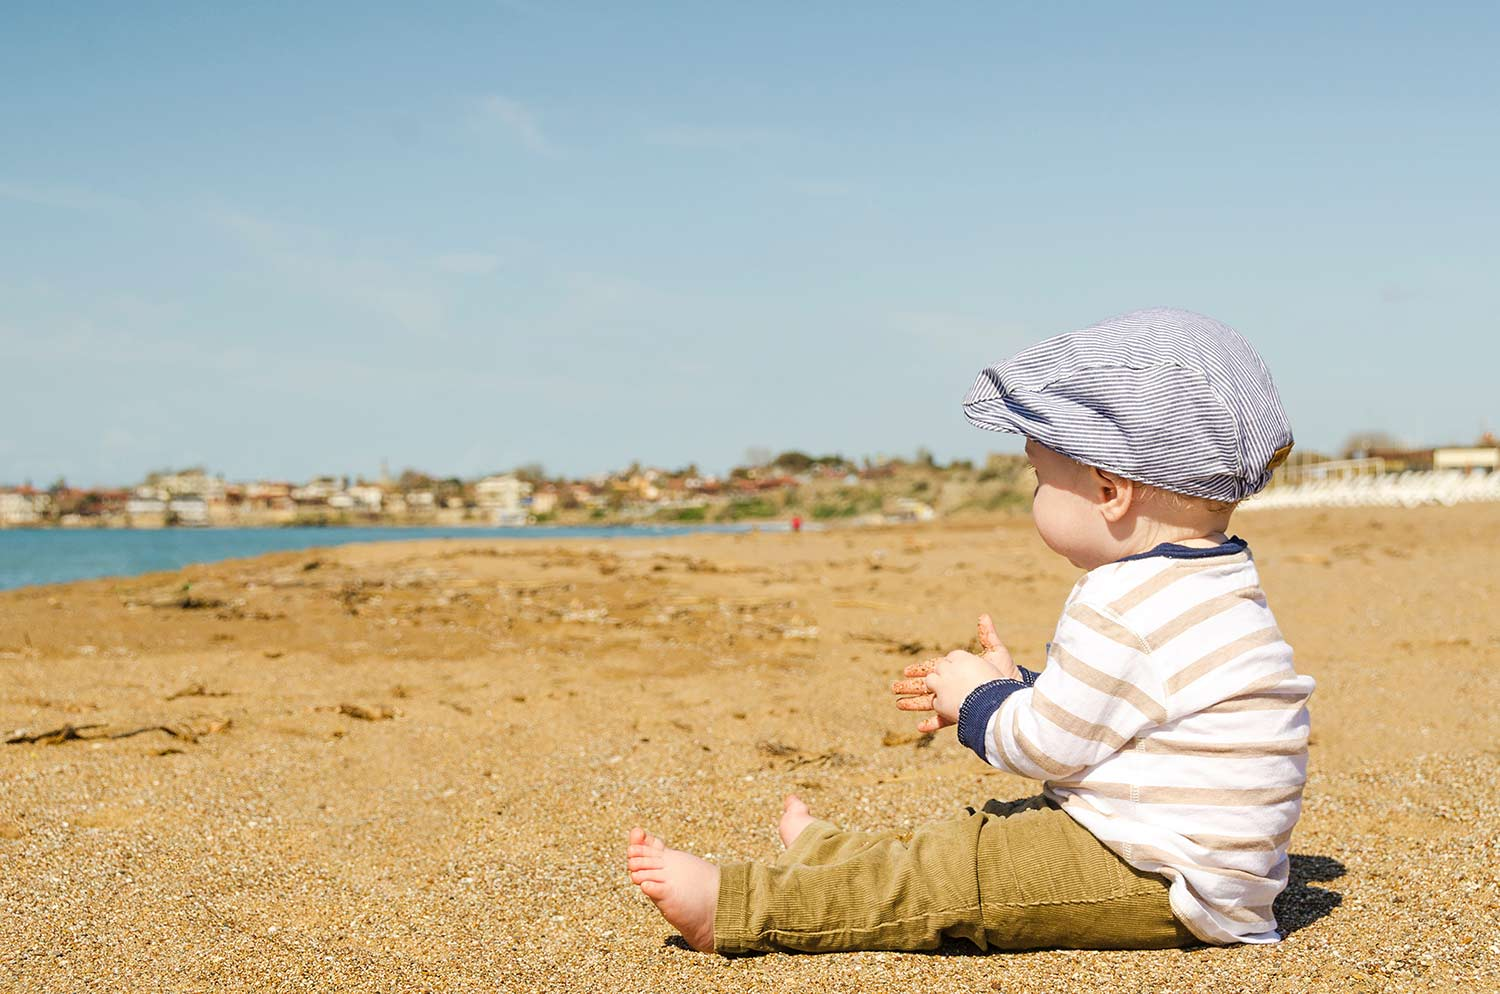 Little boy sitting on the beach, the Best Sunscreen For Kids: What To Look For And What Brands To Buy, featuring Dr. Alison Mitzner in the Huffington Post